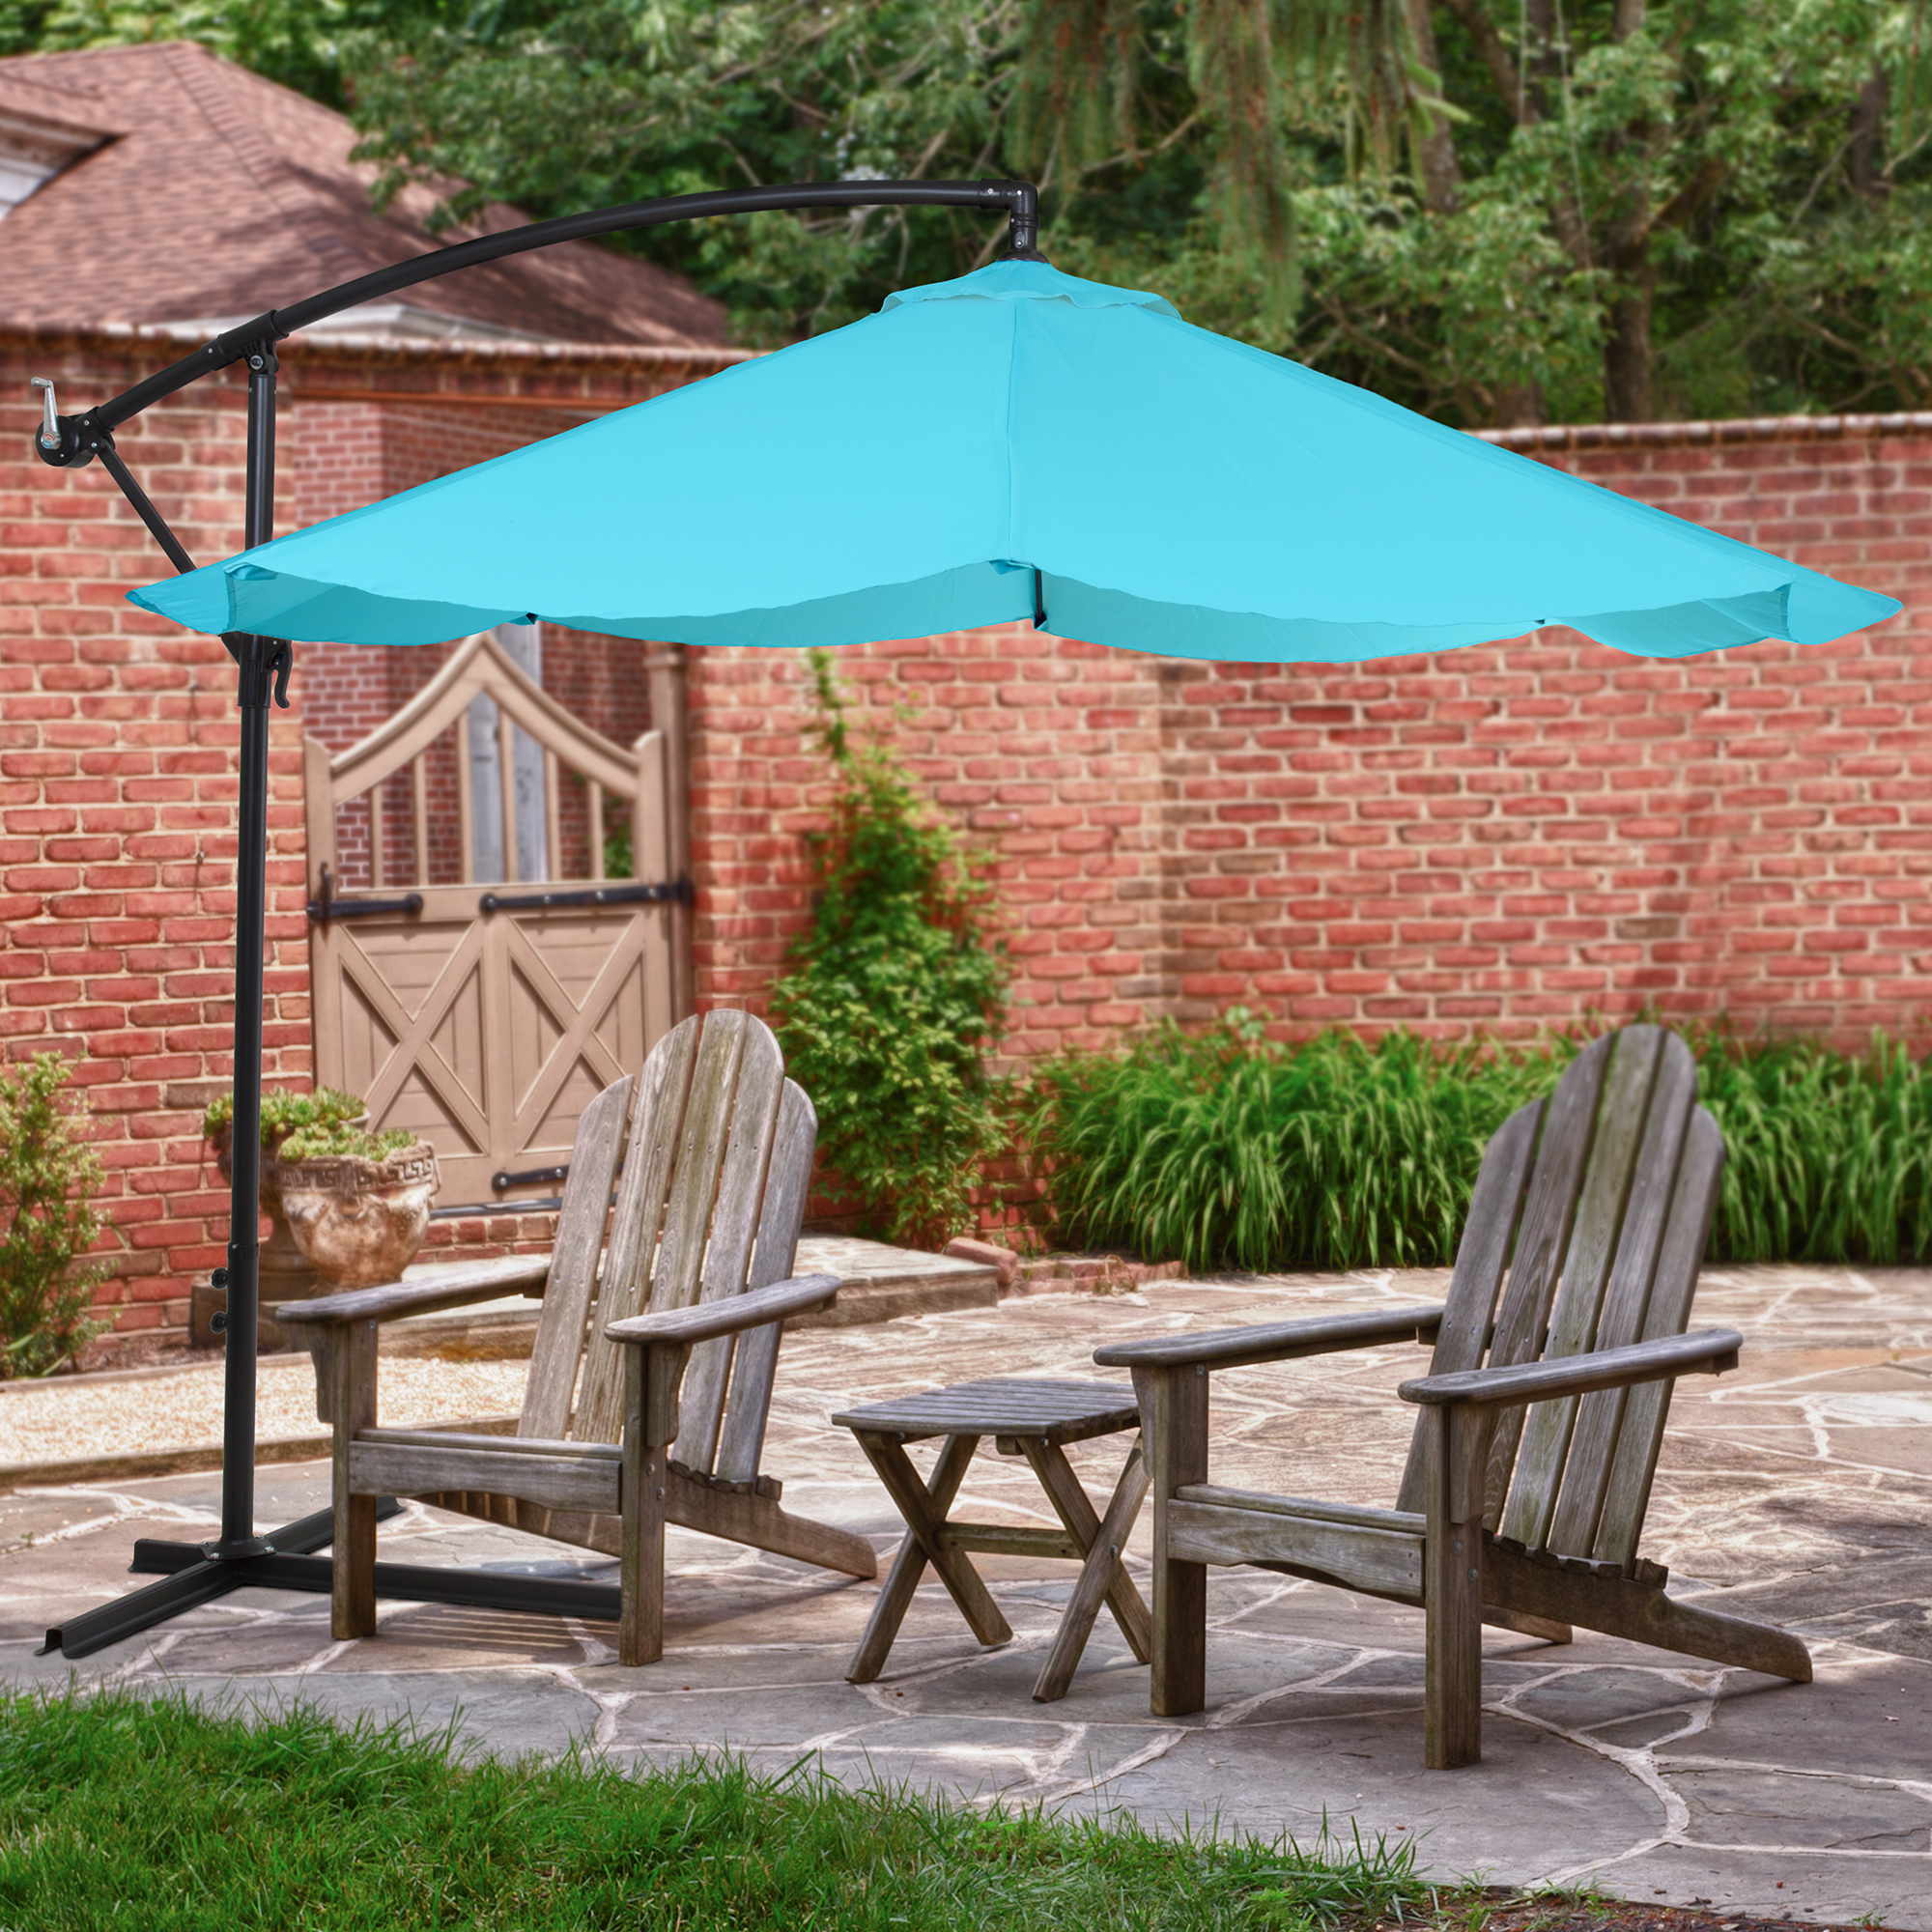 Patio Umbrella, Cantilever Hanging Outdoor Shade, Easy Crank And Base For  Table, Deck, Balcony, Porch, Backyard, Pool 10 Foot By Pure Garden (Blue)  ...